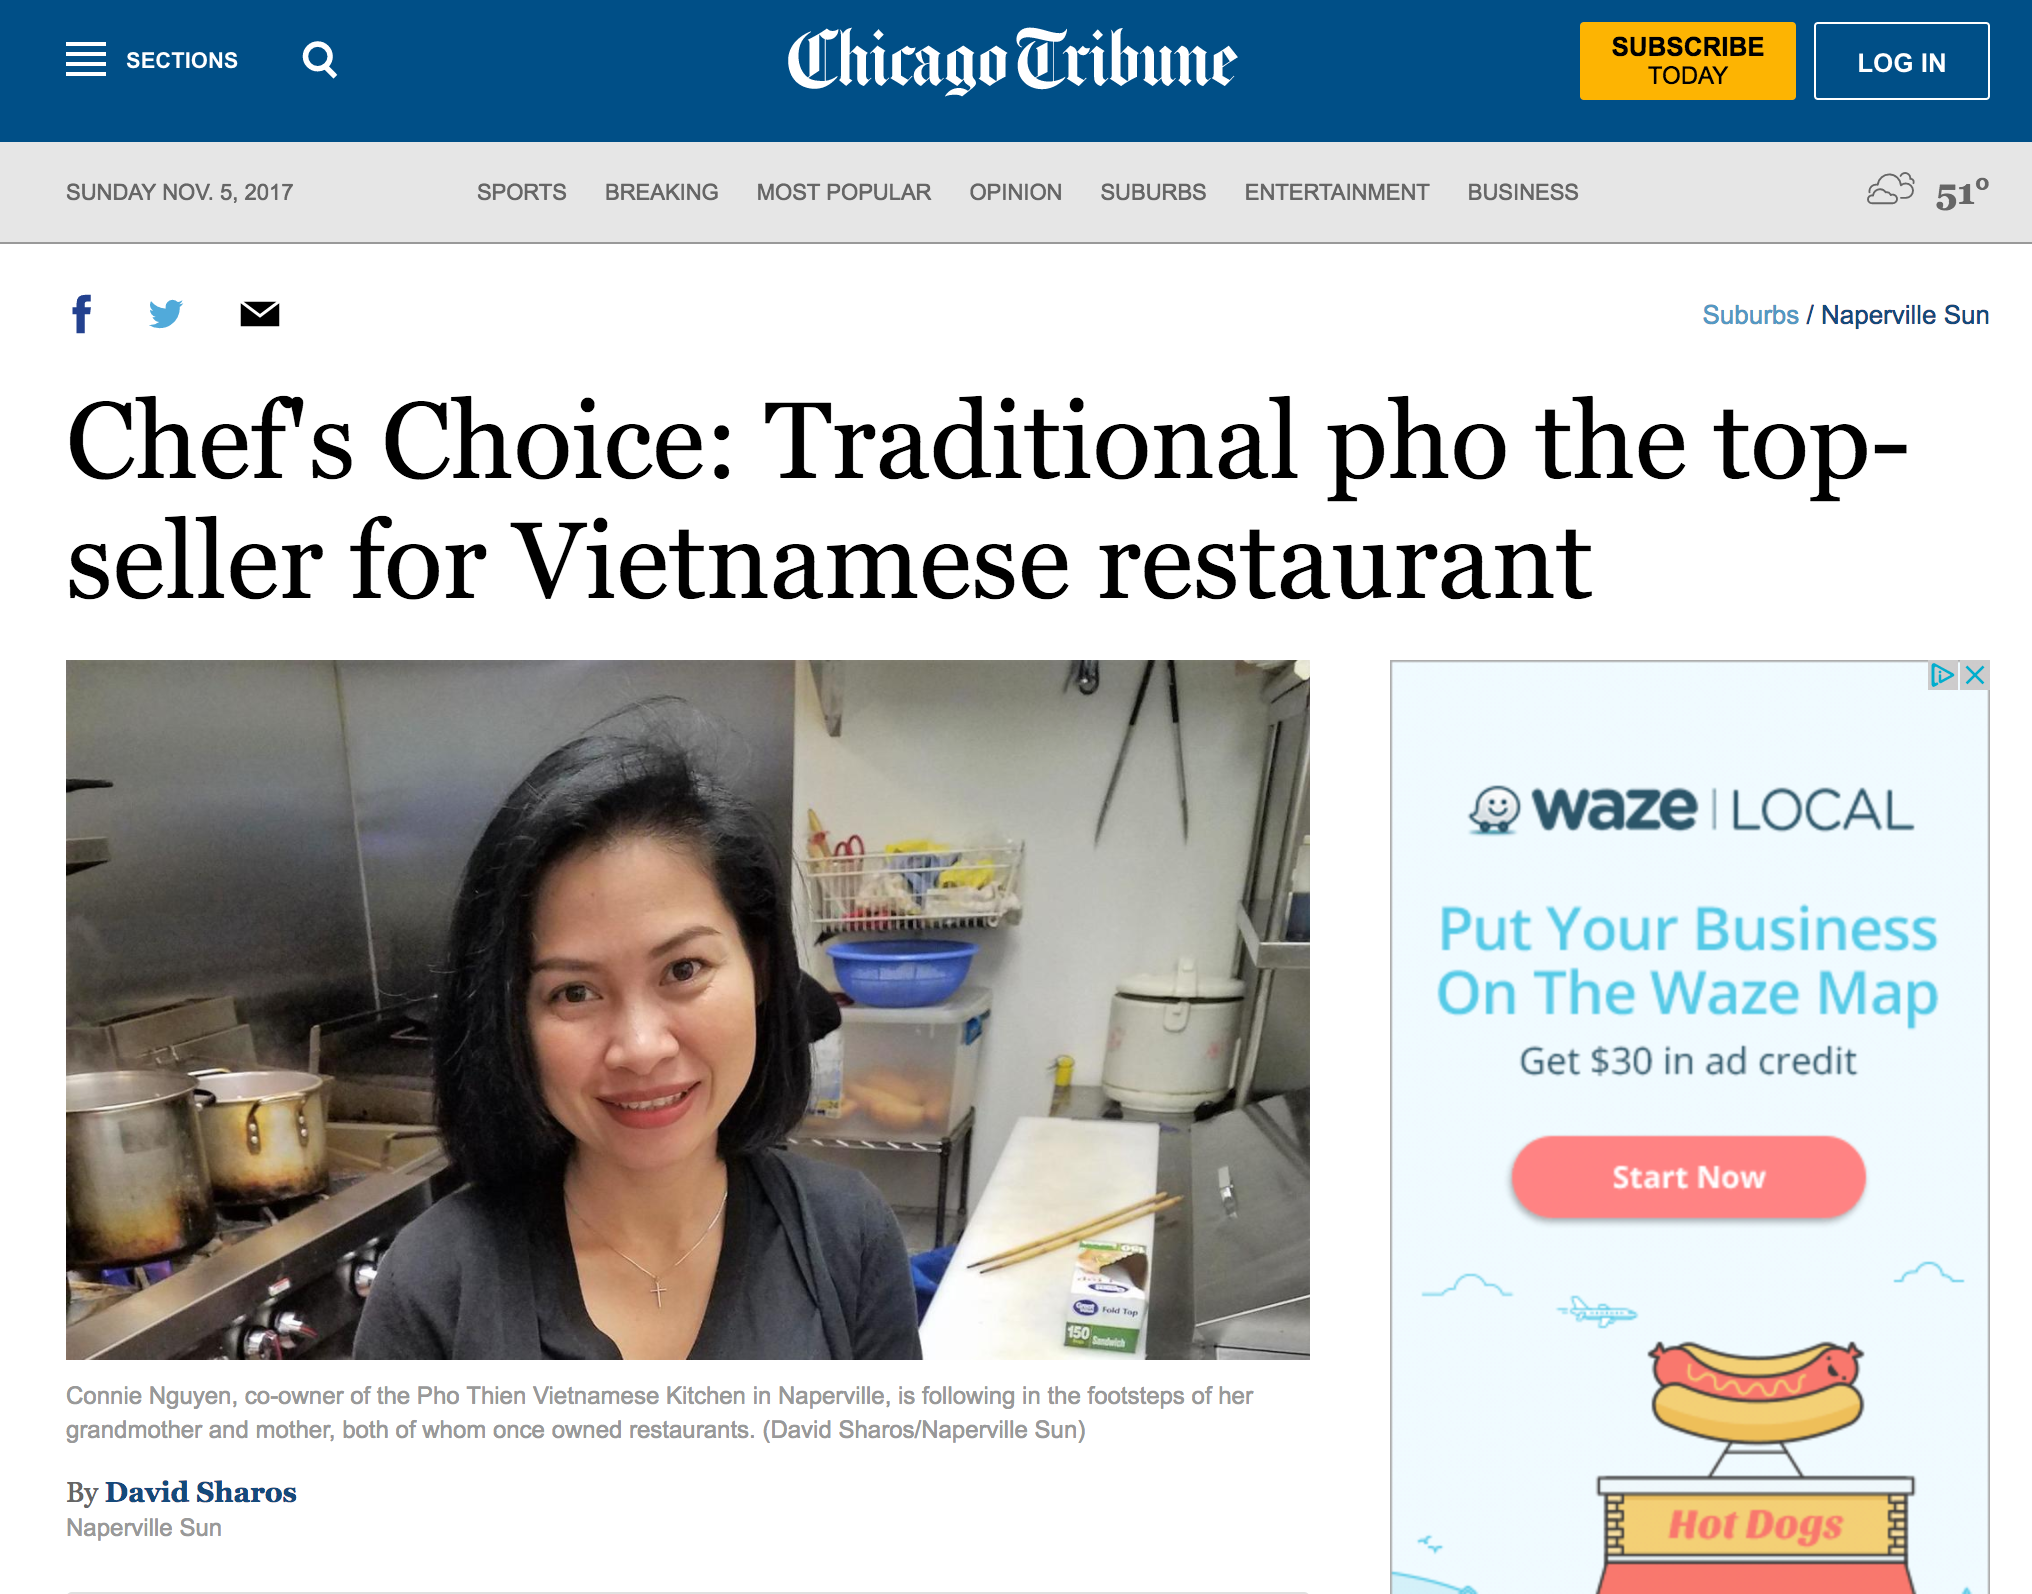 Chef_s_Choice__Traditional_pho_the_top-seller_for_Vietnamese_restaurant_-_Naperville_Sun.png